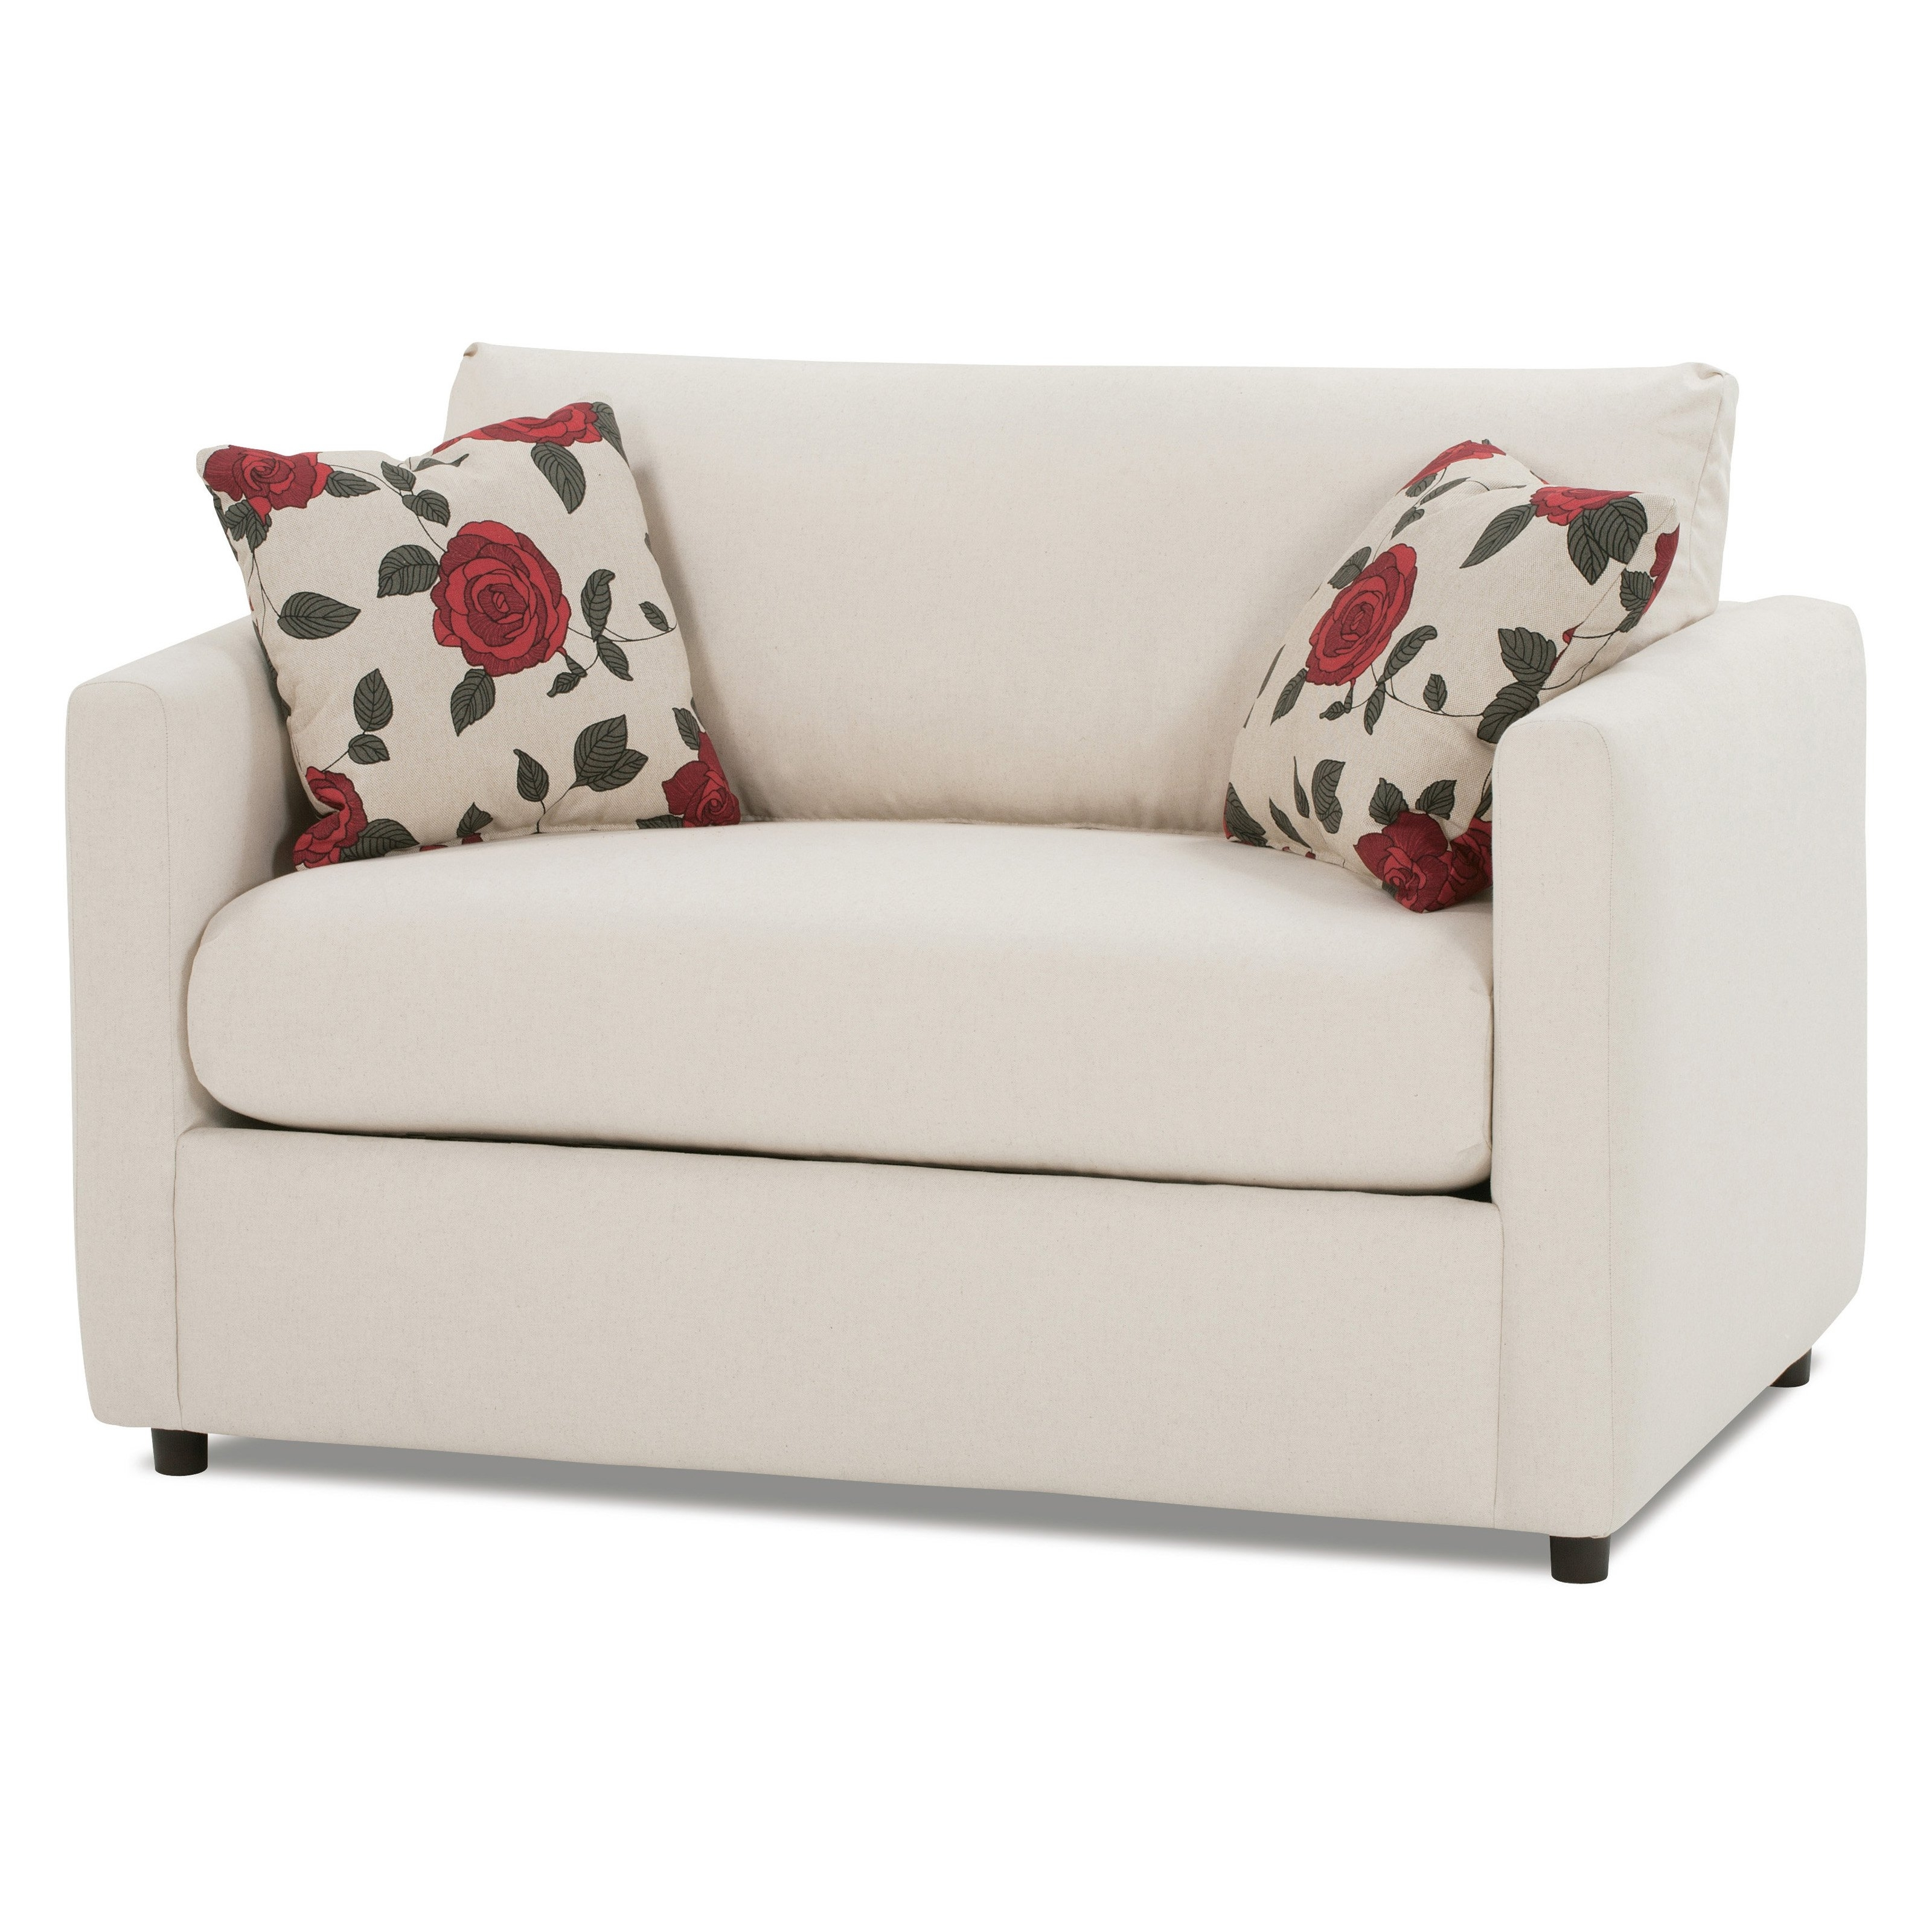 White Color Leather Twin Size Sleeper Sofa With Storage And Pillow Regarding Widely Used Twin Sofa Chairs (View 20 of 20)